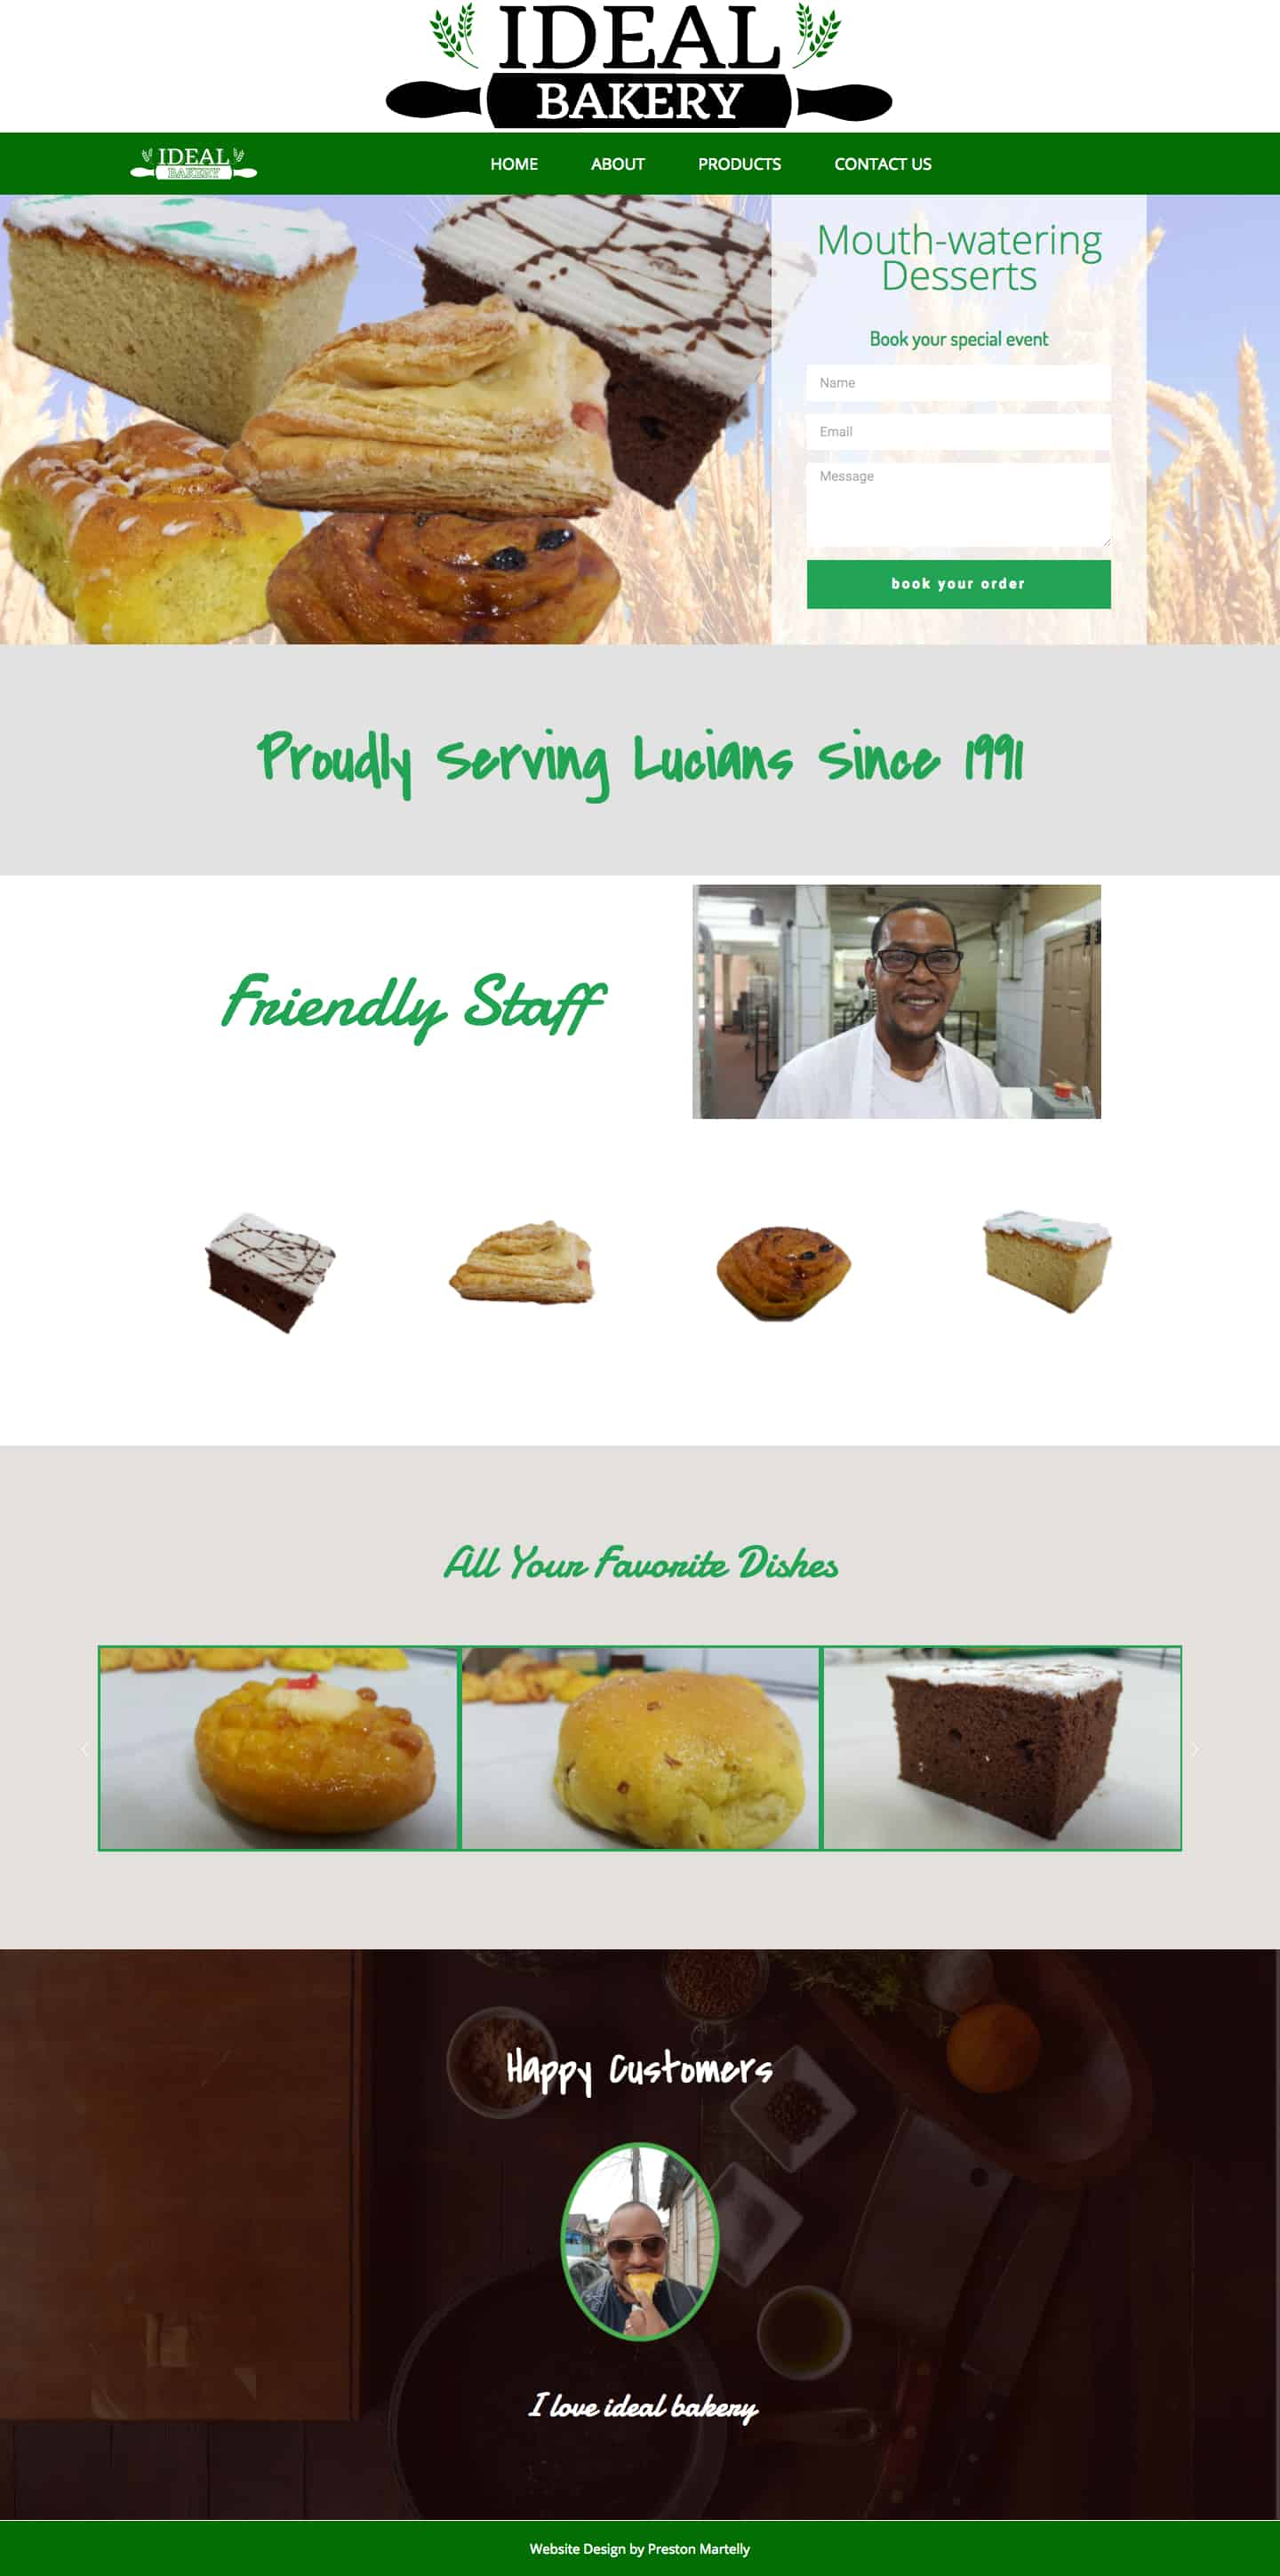 Ideal Bakery – Finest Quality Bread and Pastries (1)